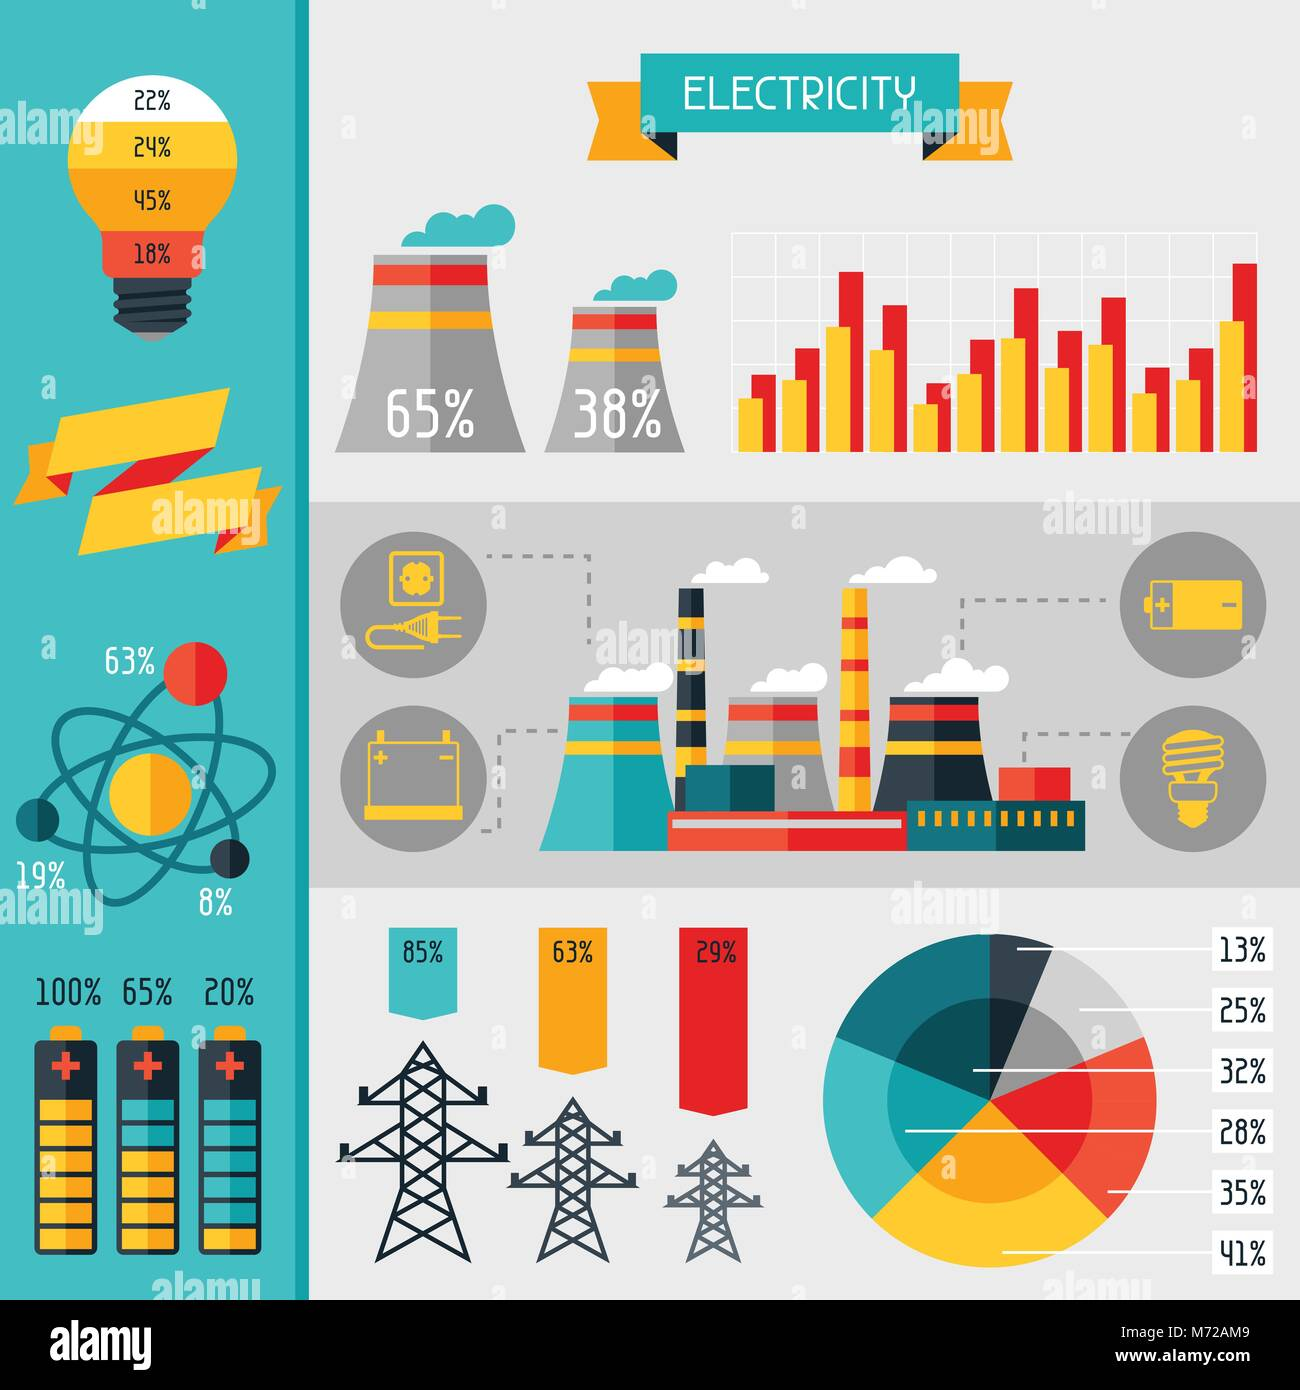 Electricity set of industry power infographic in flat style - Stock Image